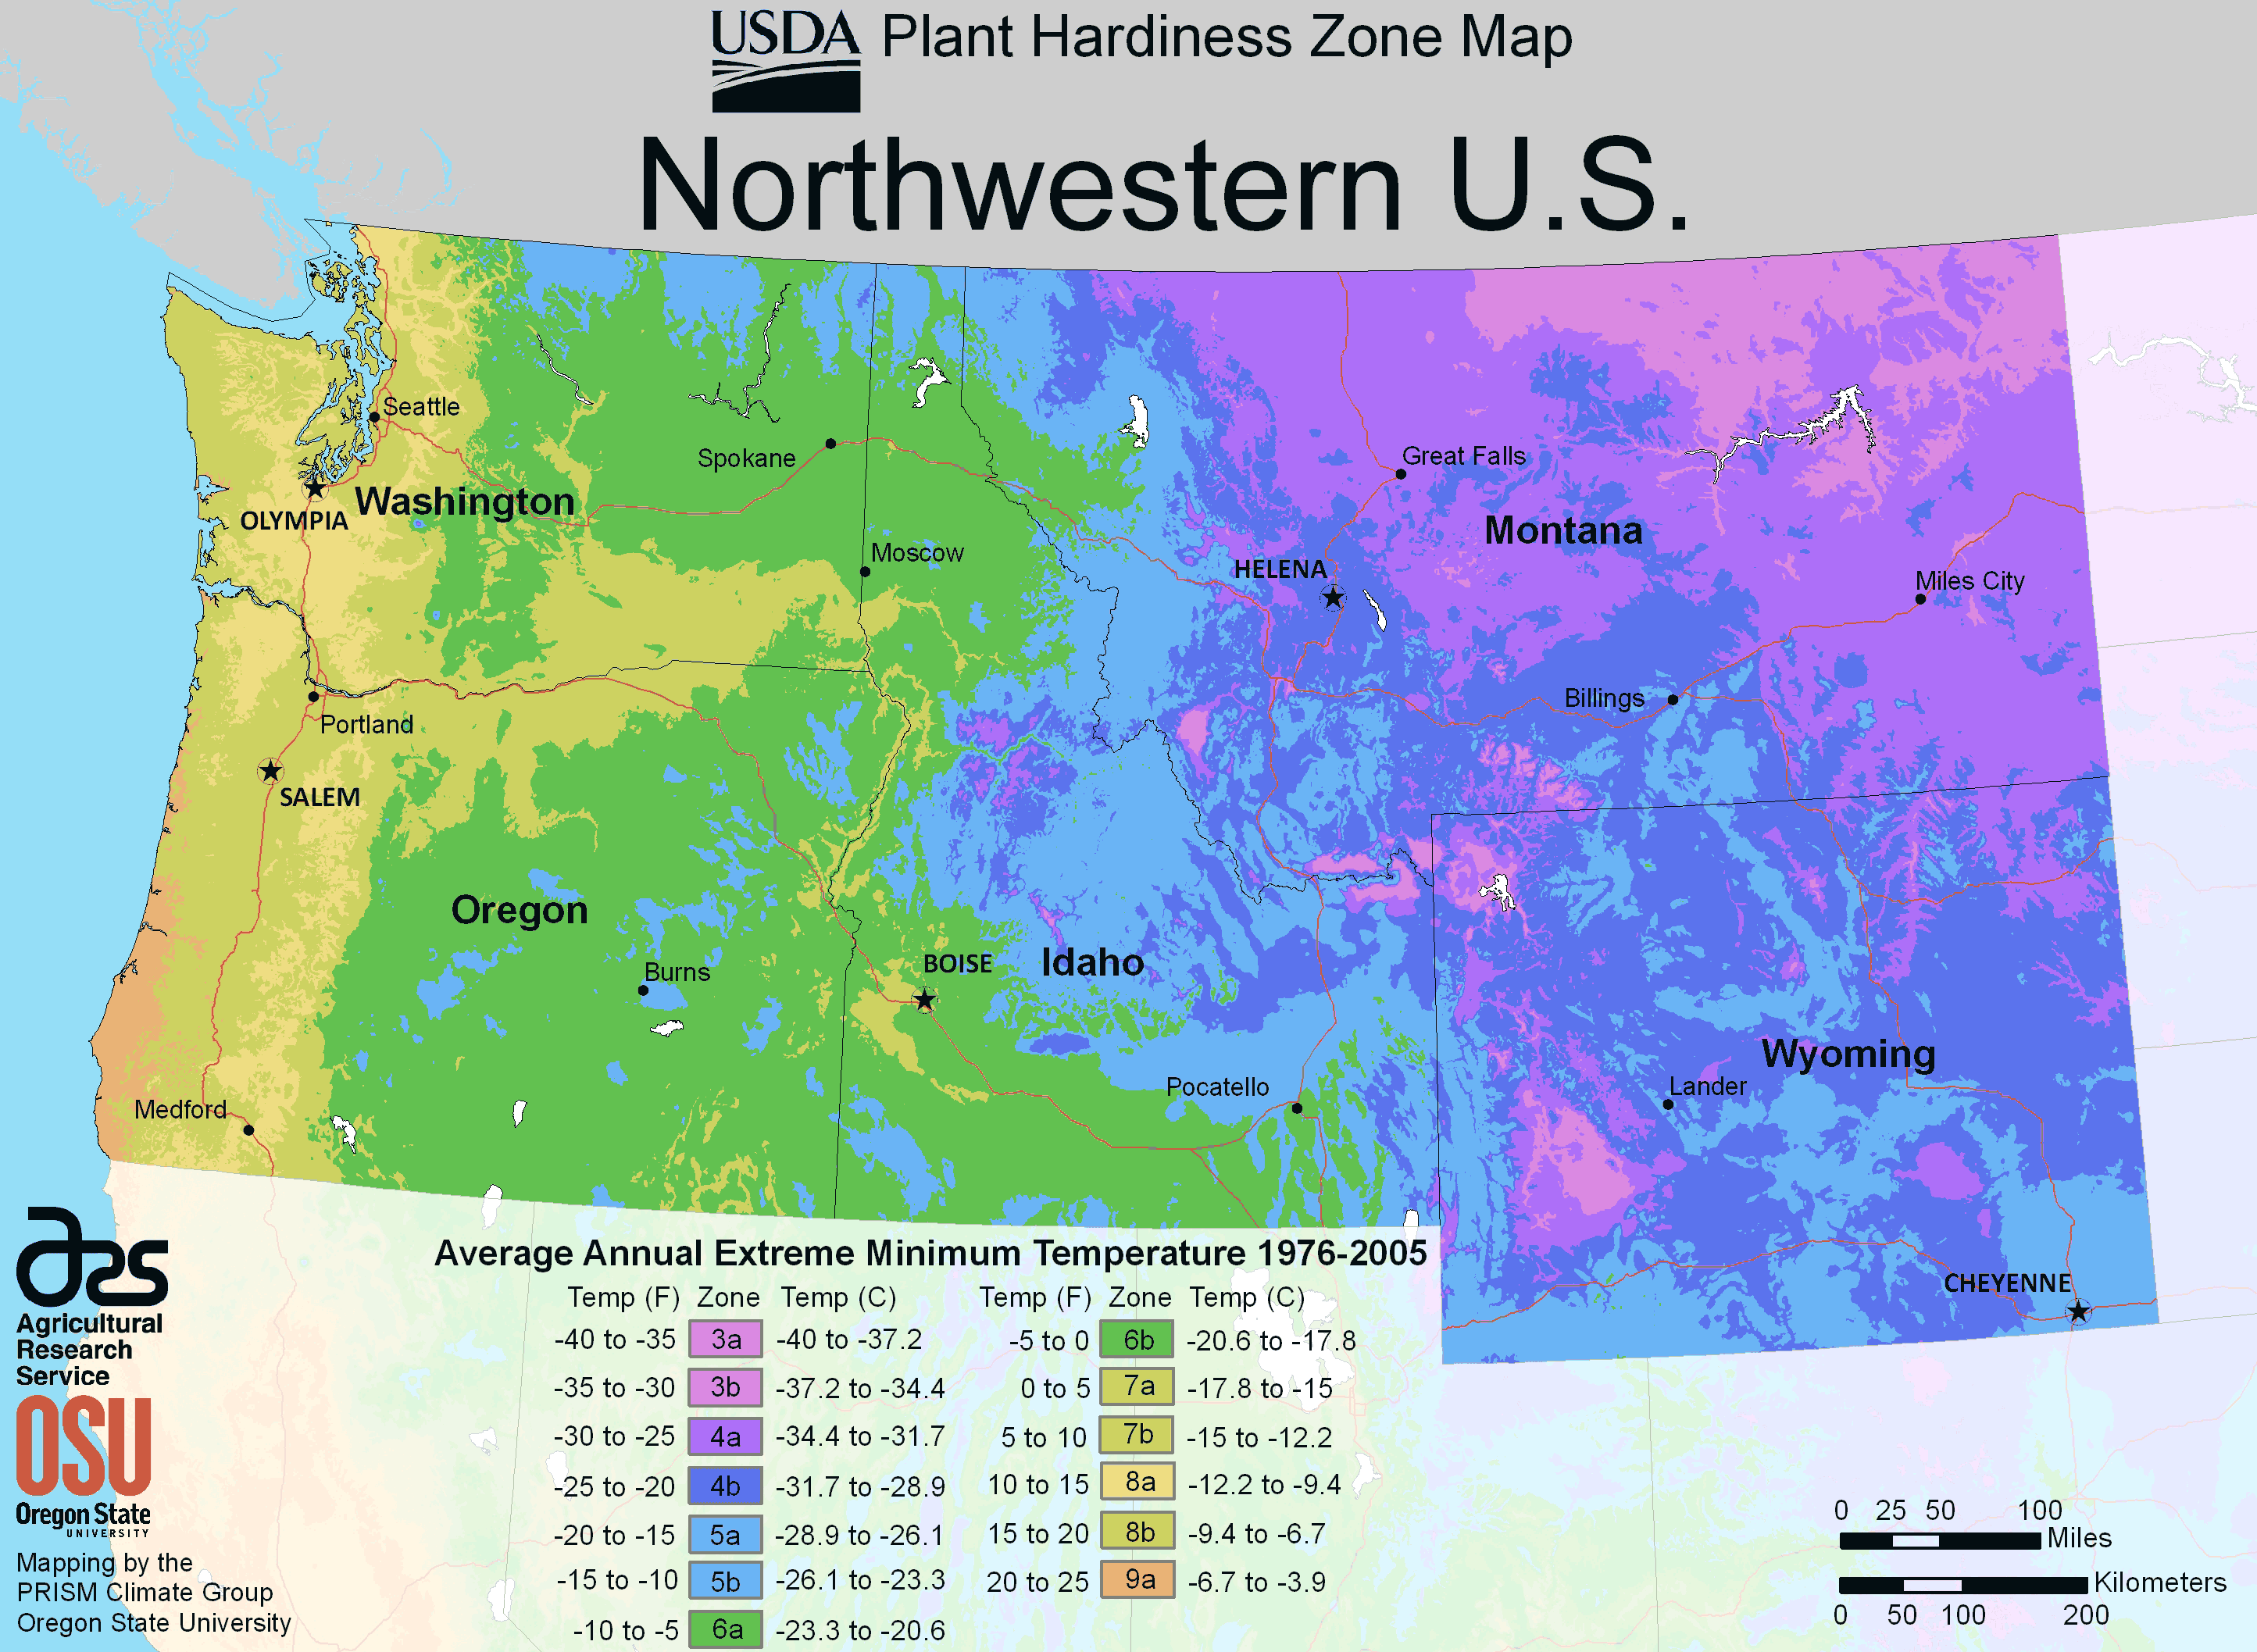 North West Us Plant Hardiness Zone Map Mapsof Net